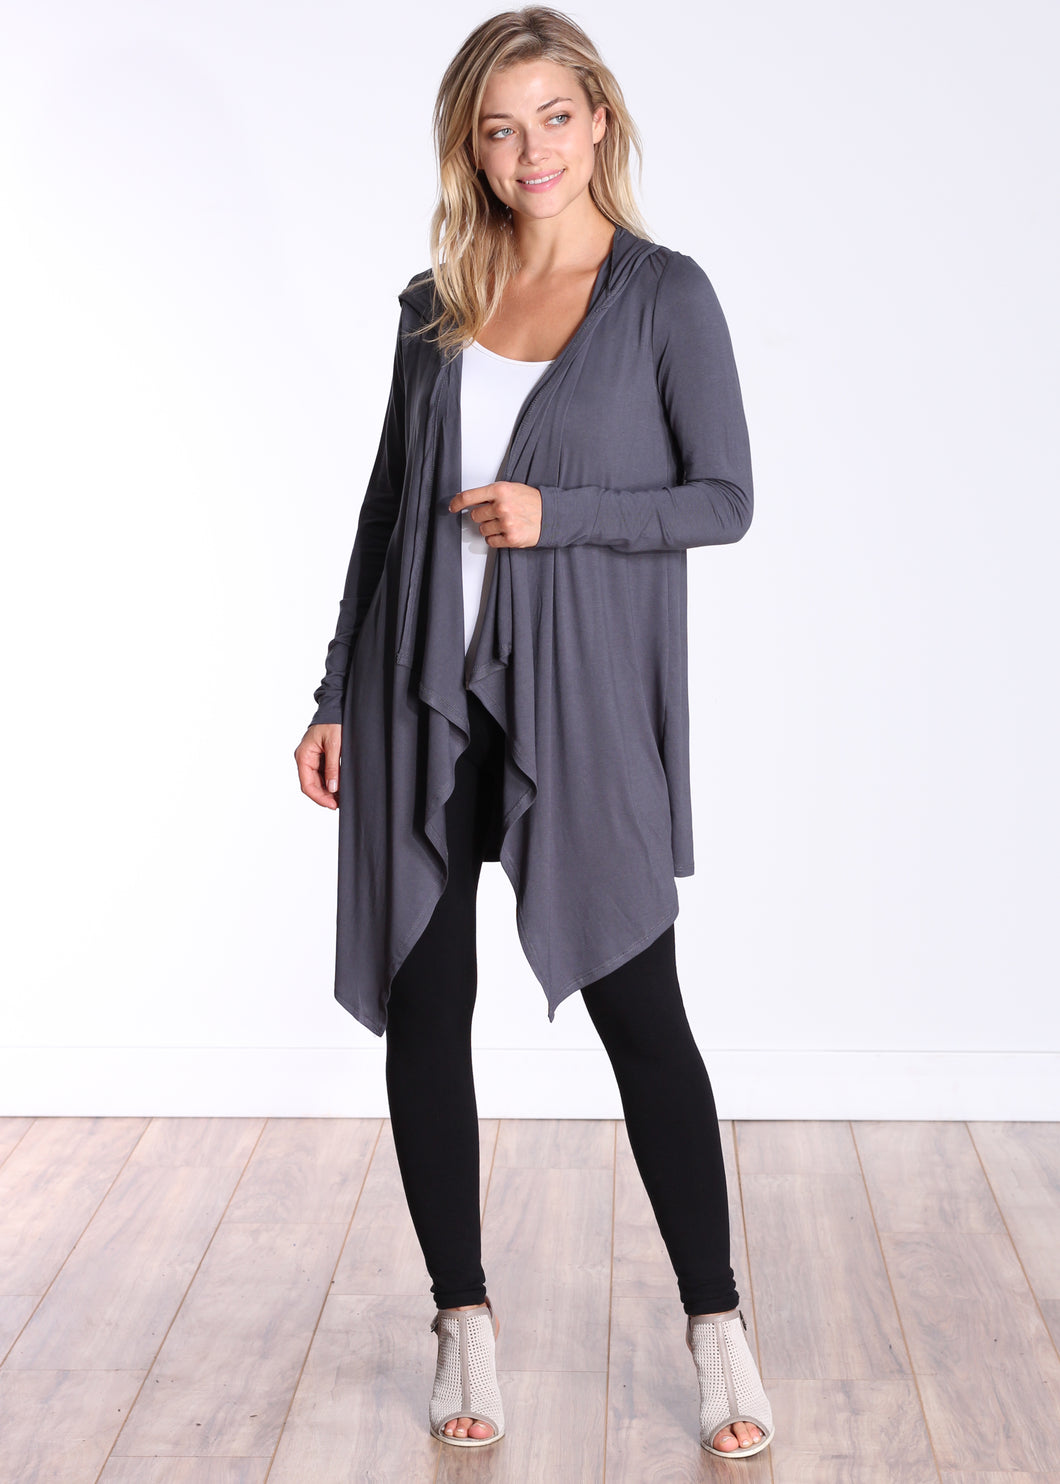 Slate Long Sleeve Hooded Cardigan